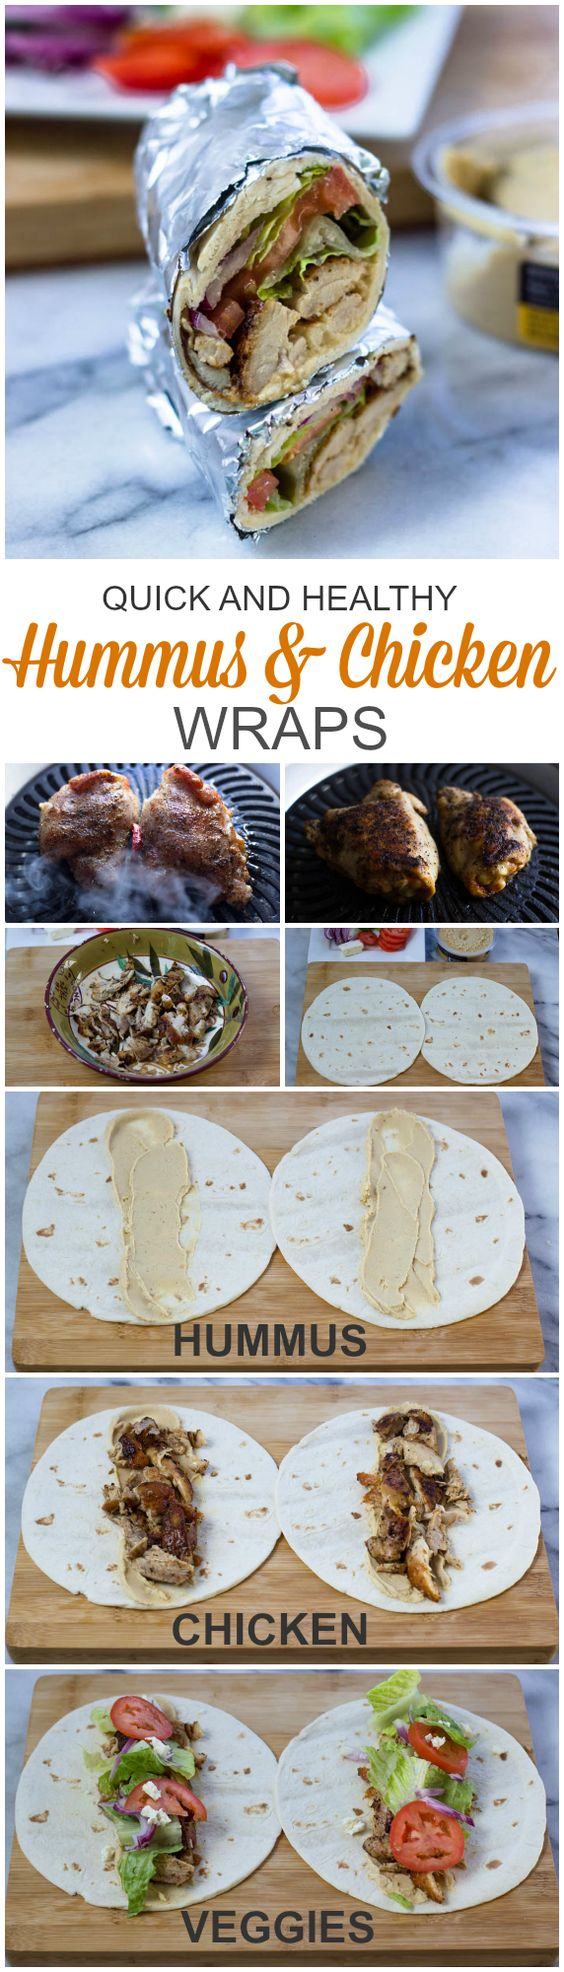 my family has always done this but instead of wraps we use pita bread and rotisserie chicken!! cheap and delicious!!